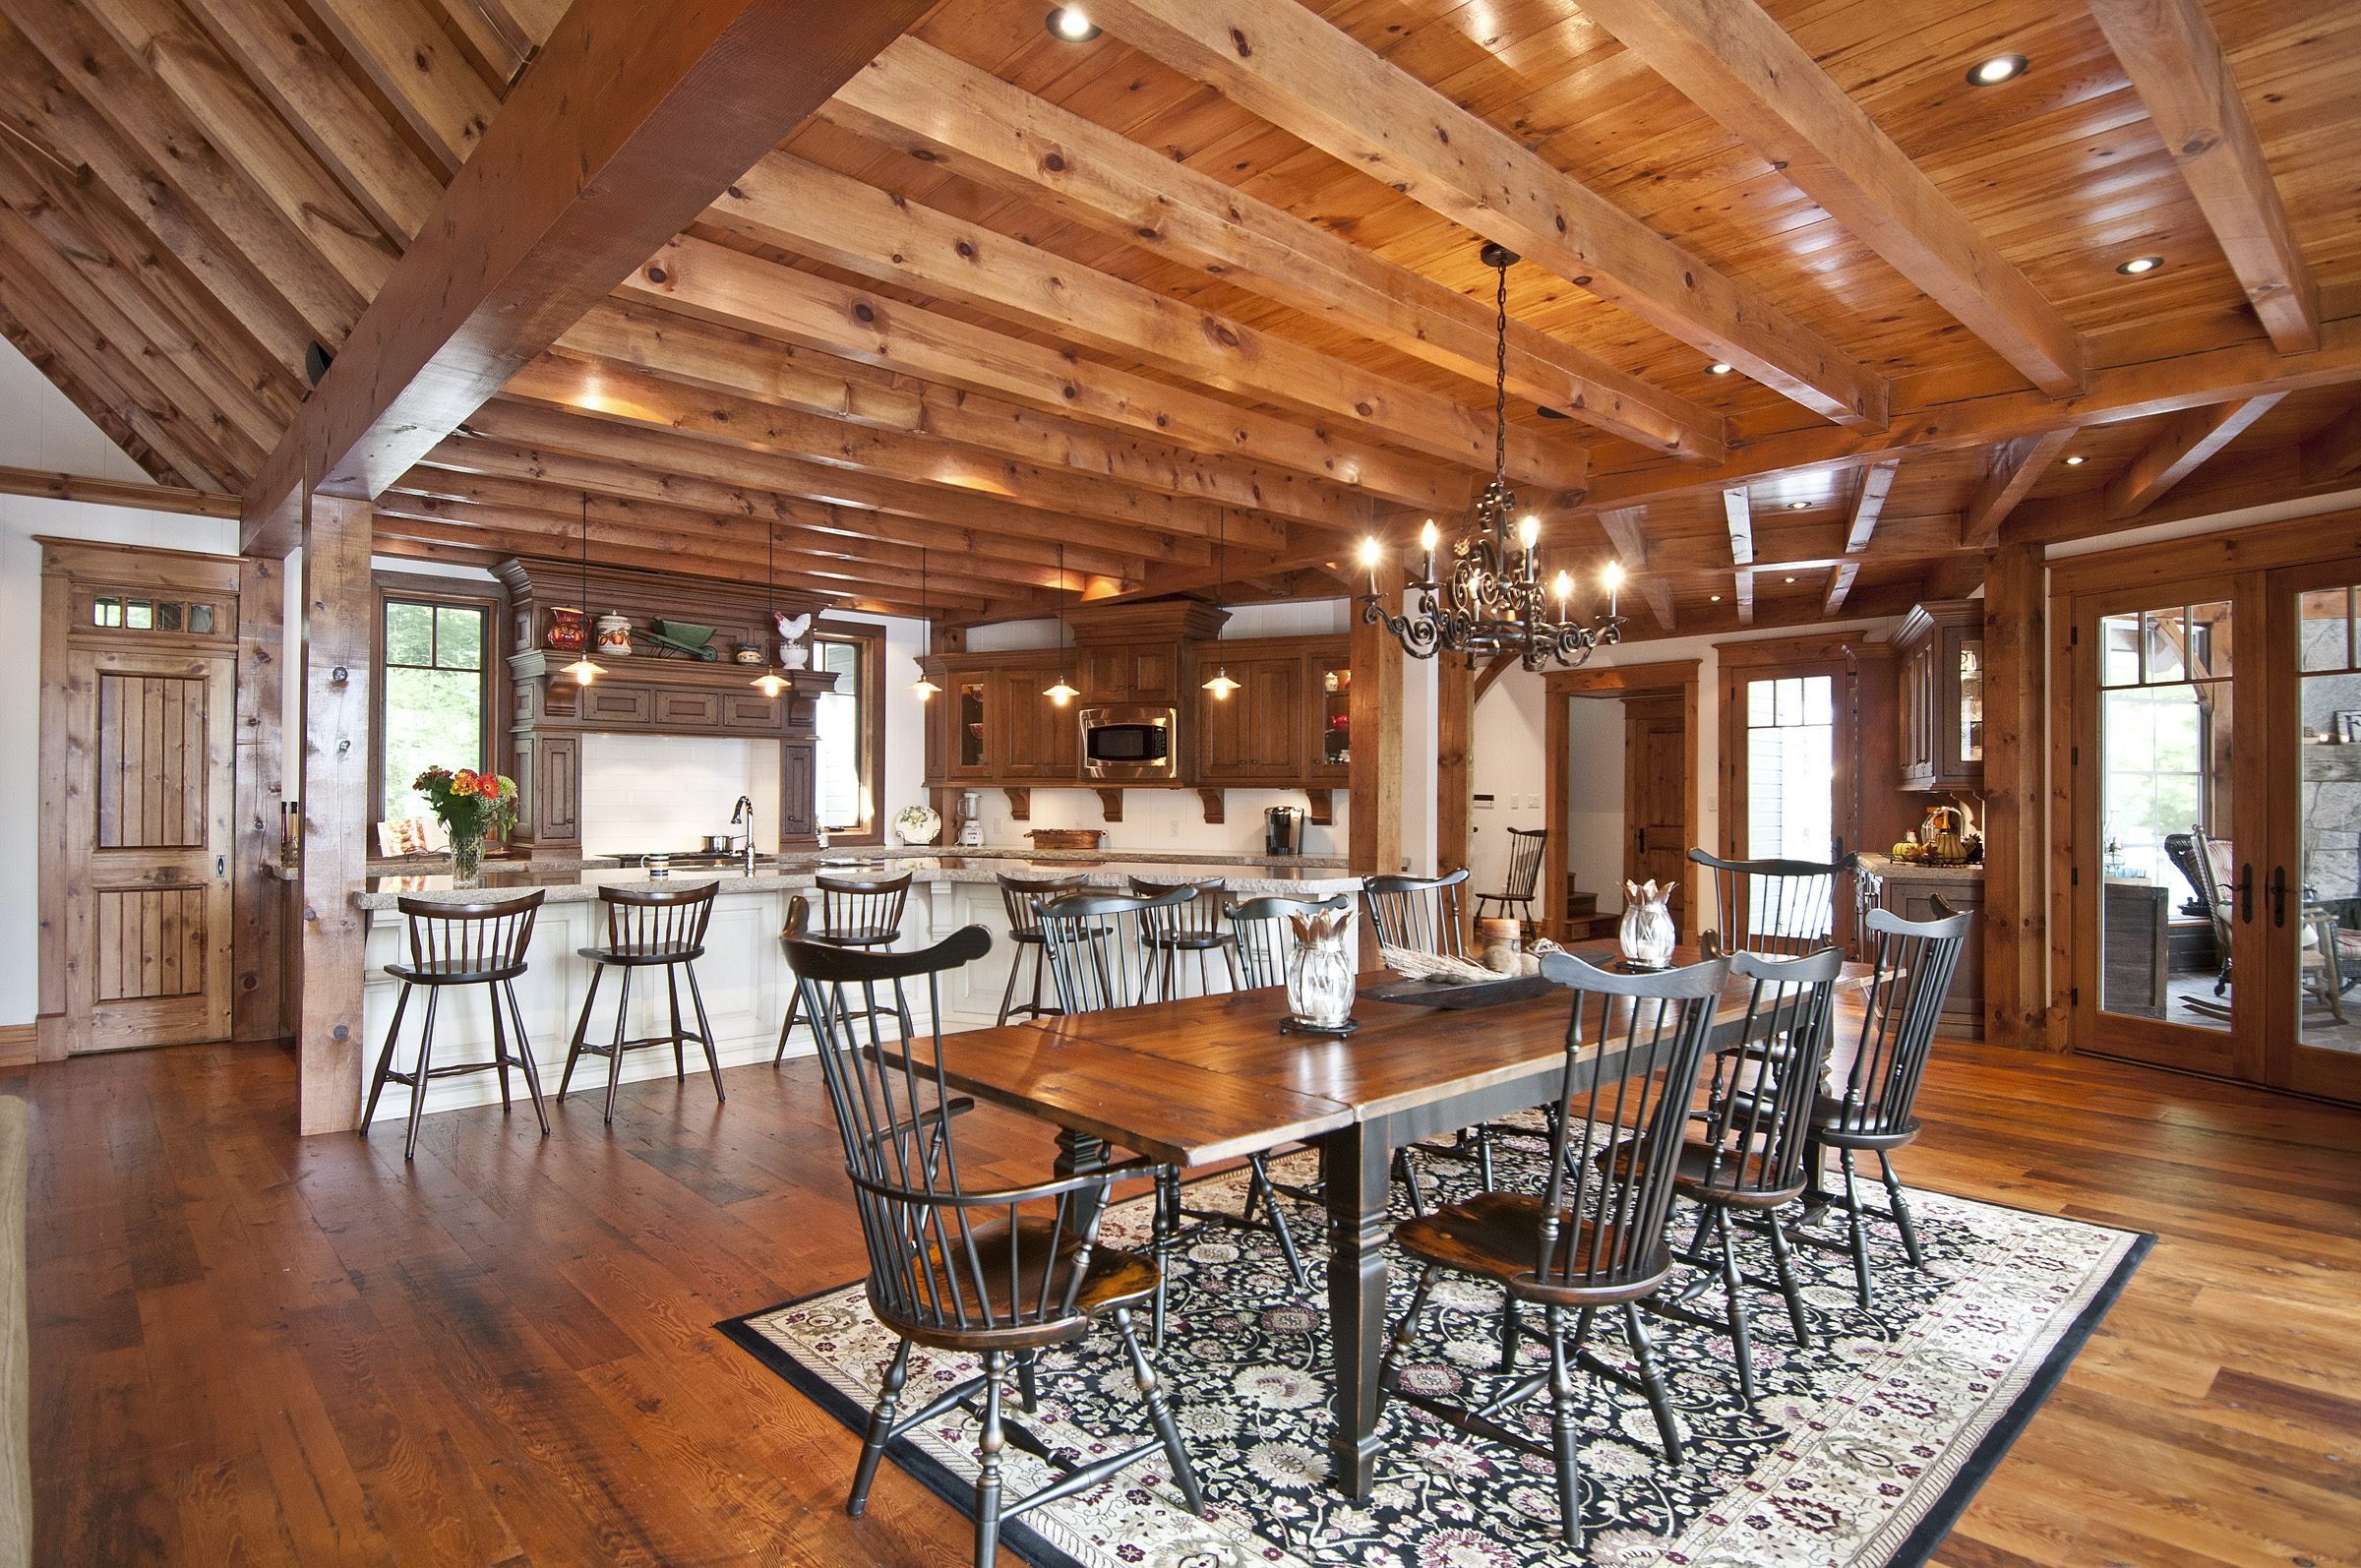 Normerica Timber Frame, Interior, Cottage, Dining Room, Kitchen, Open Concept, Cathedral Ceiling